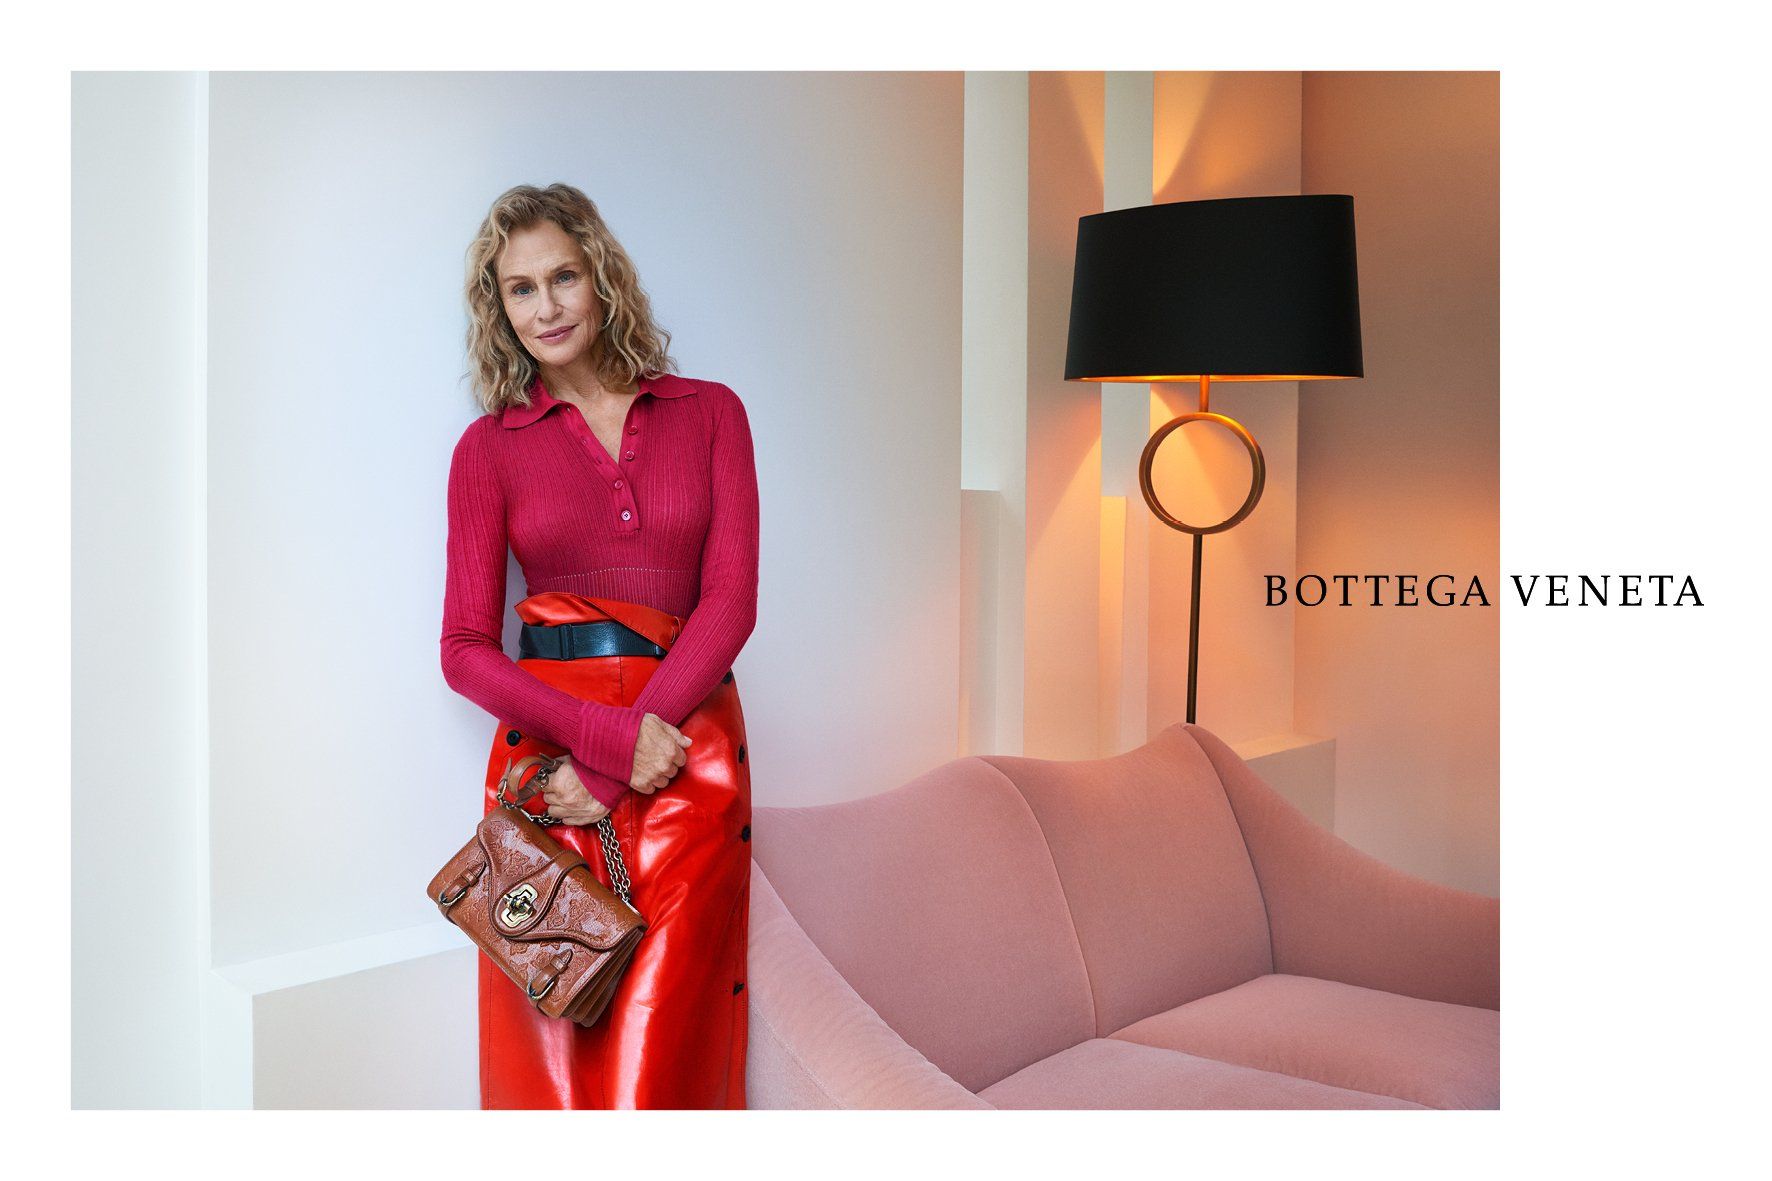 Bottega Veneta SS17 DPS Lauren Hutton